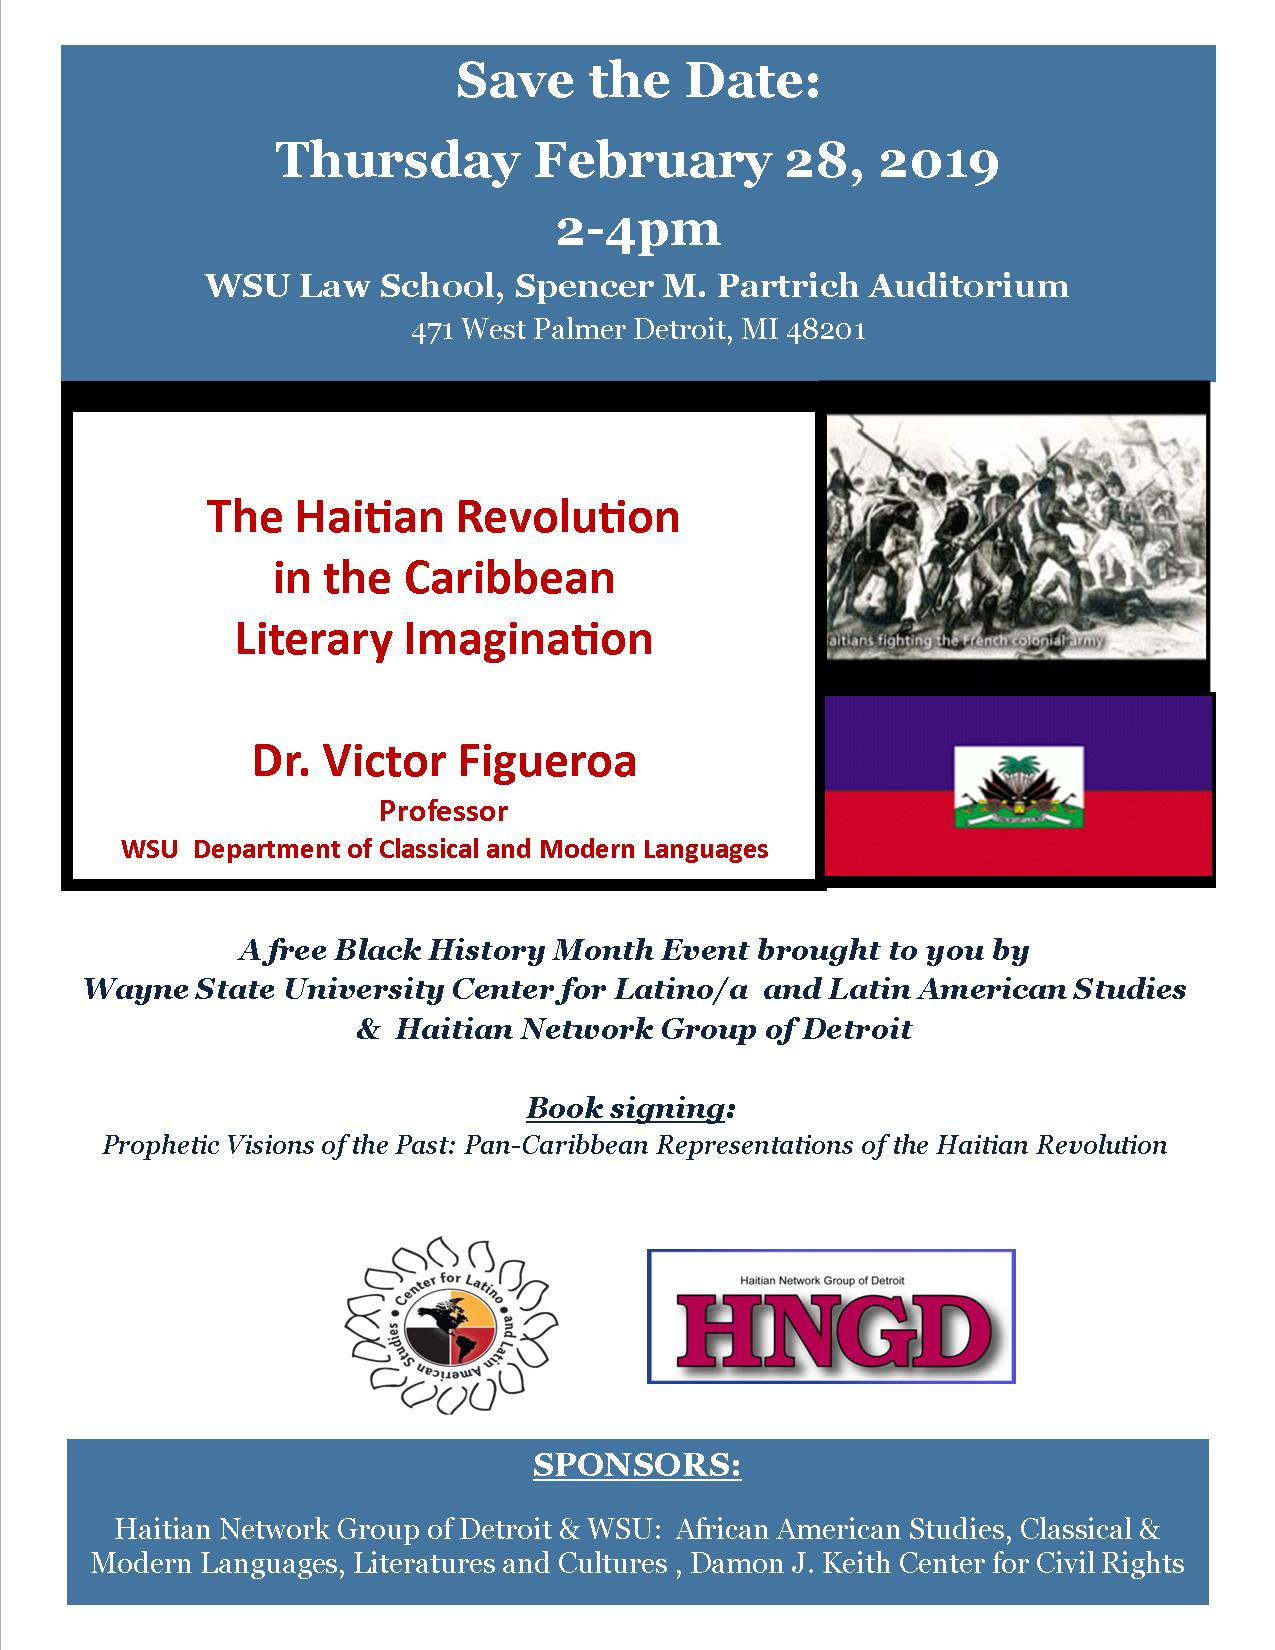 The Haitian Revolution in the Caribbean Literary Imagination